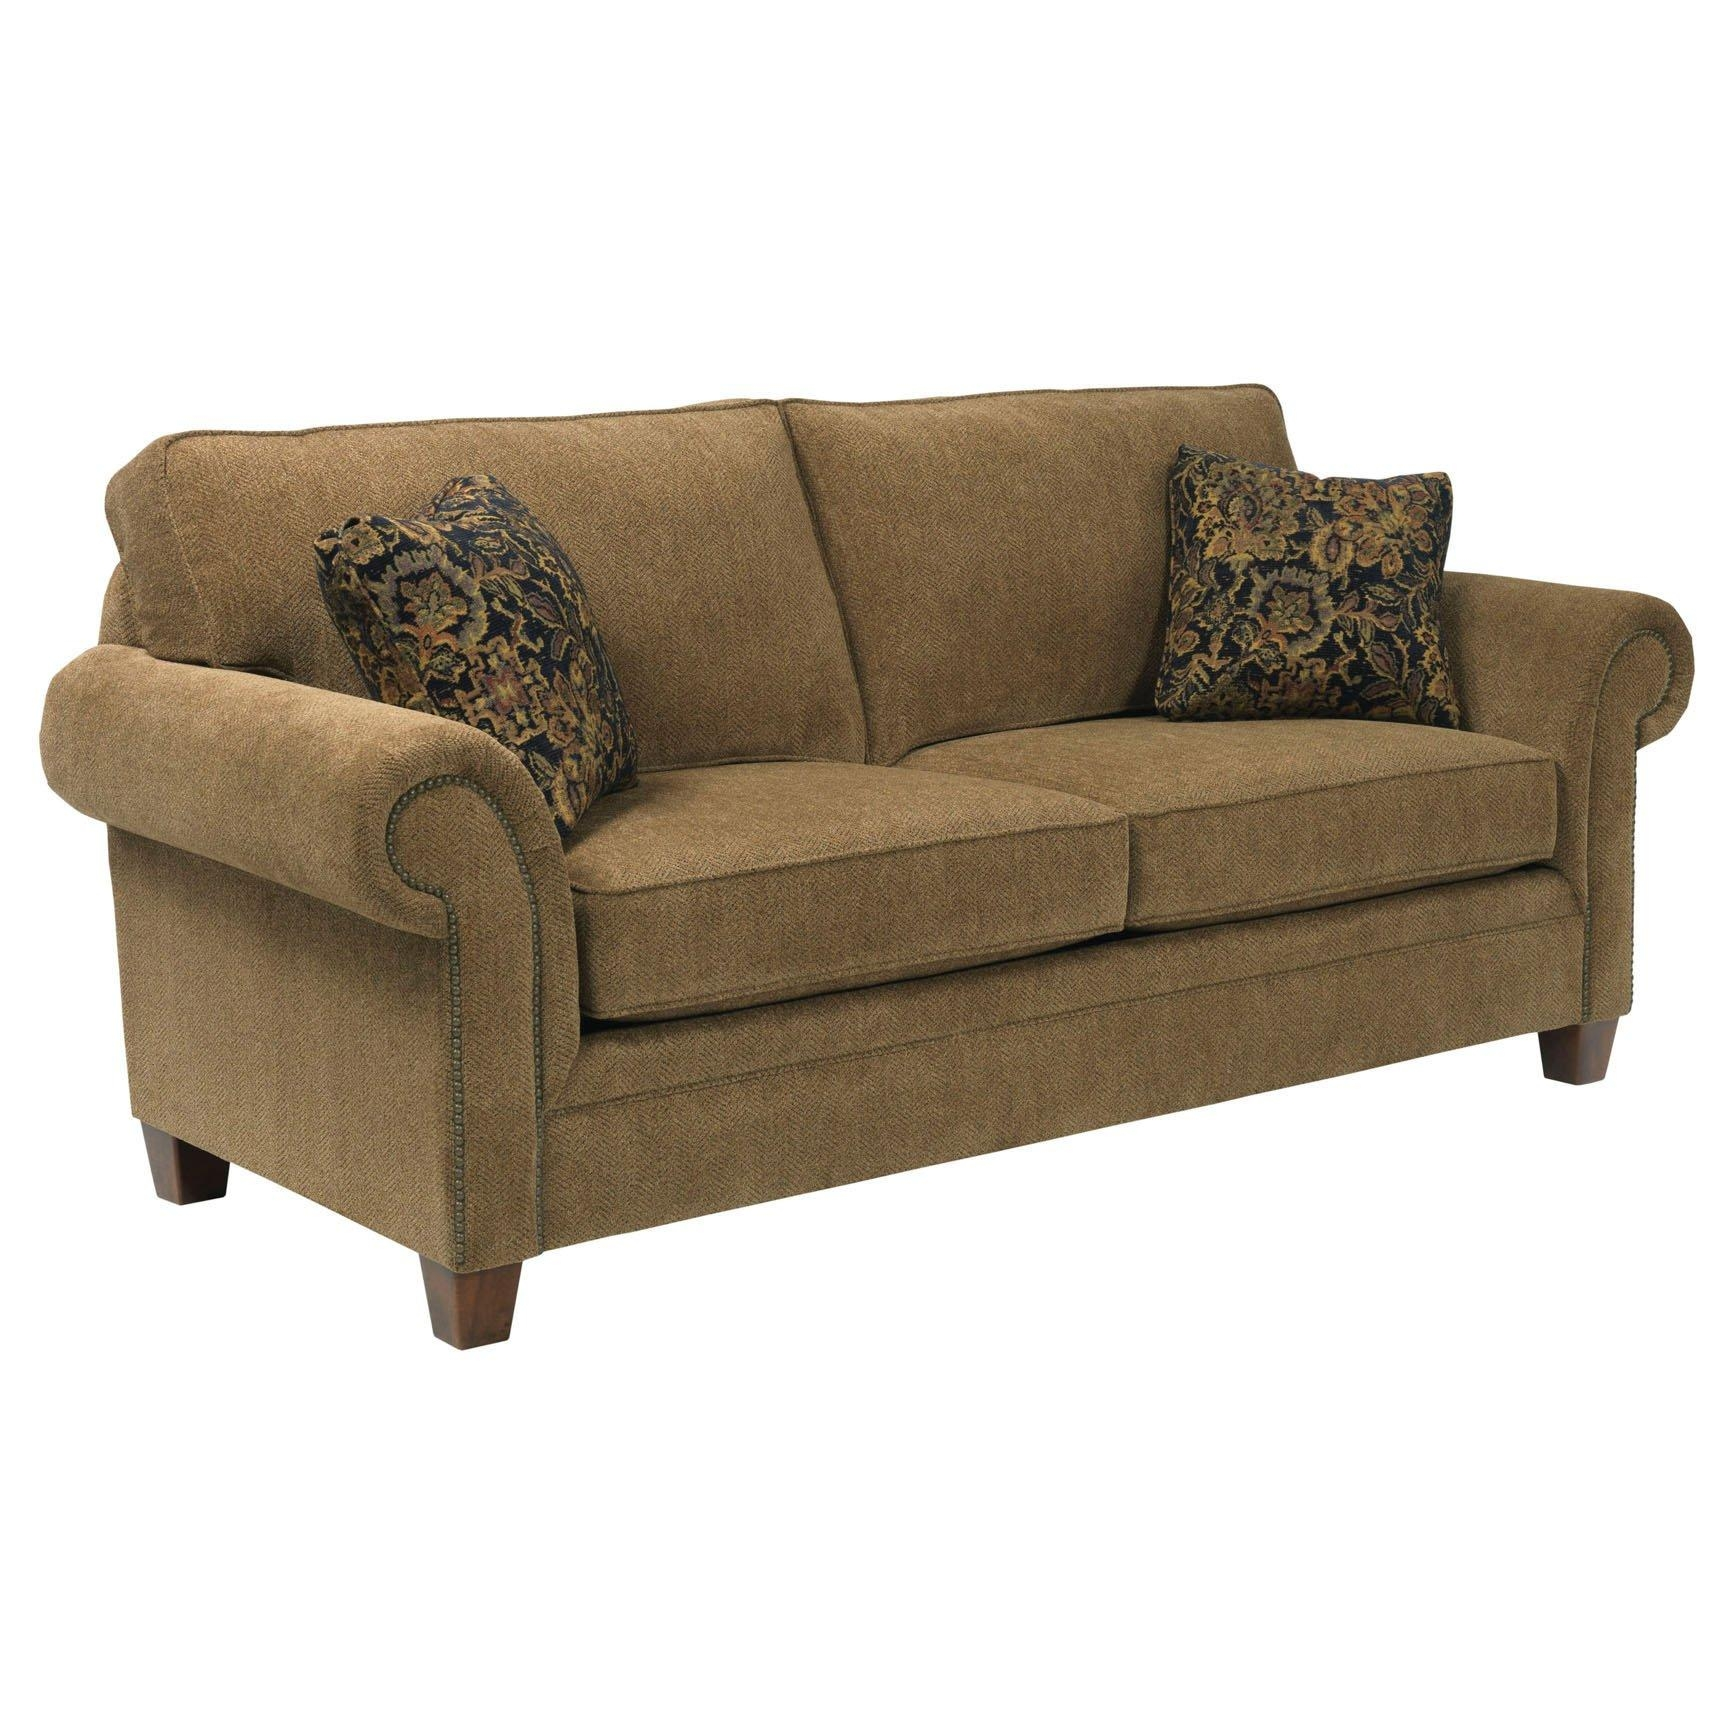 Broyhill Tanners Choice Zachary Leather Sofa Bh L7902 3 Within Broyhill Perspectives Sofas (Image 14 of 20)